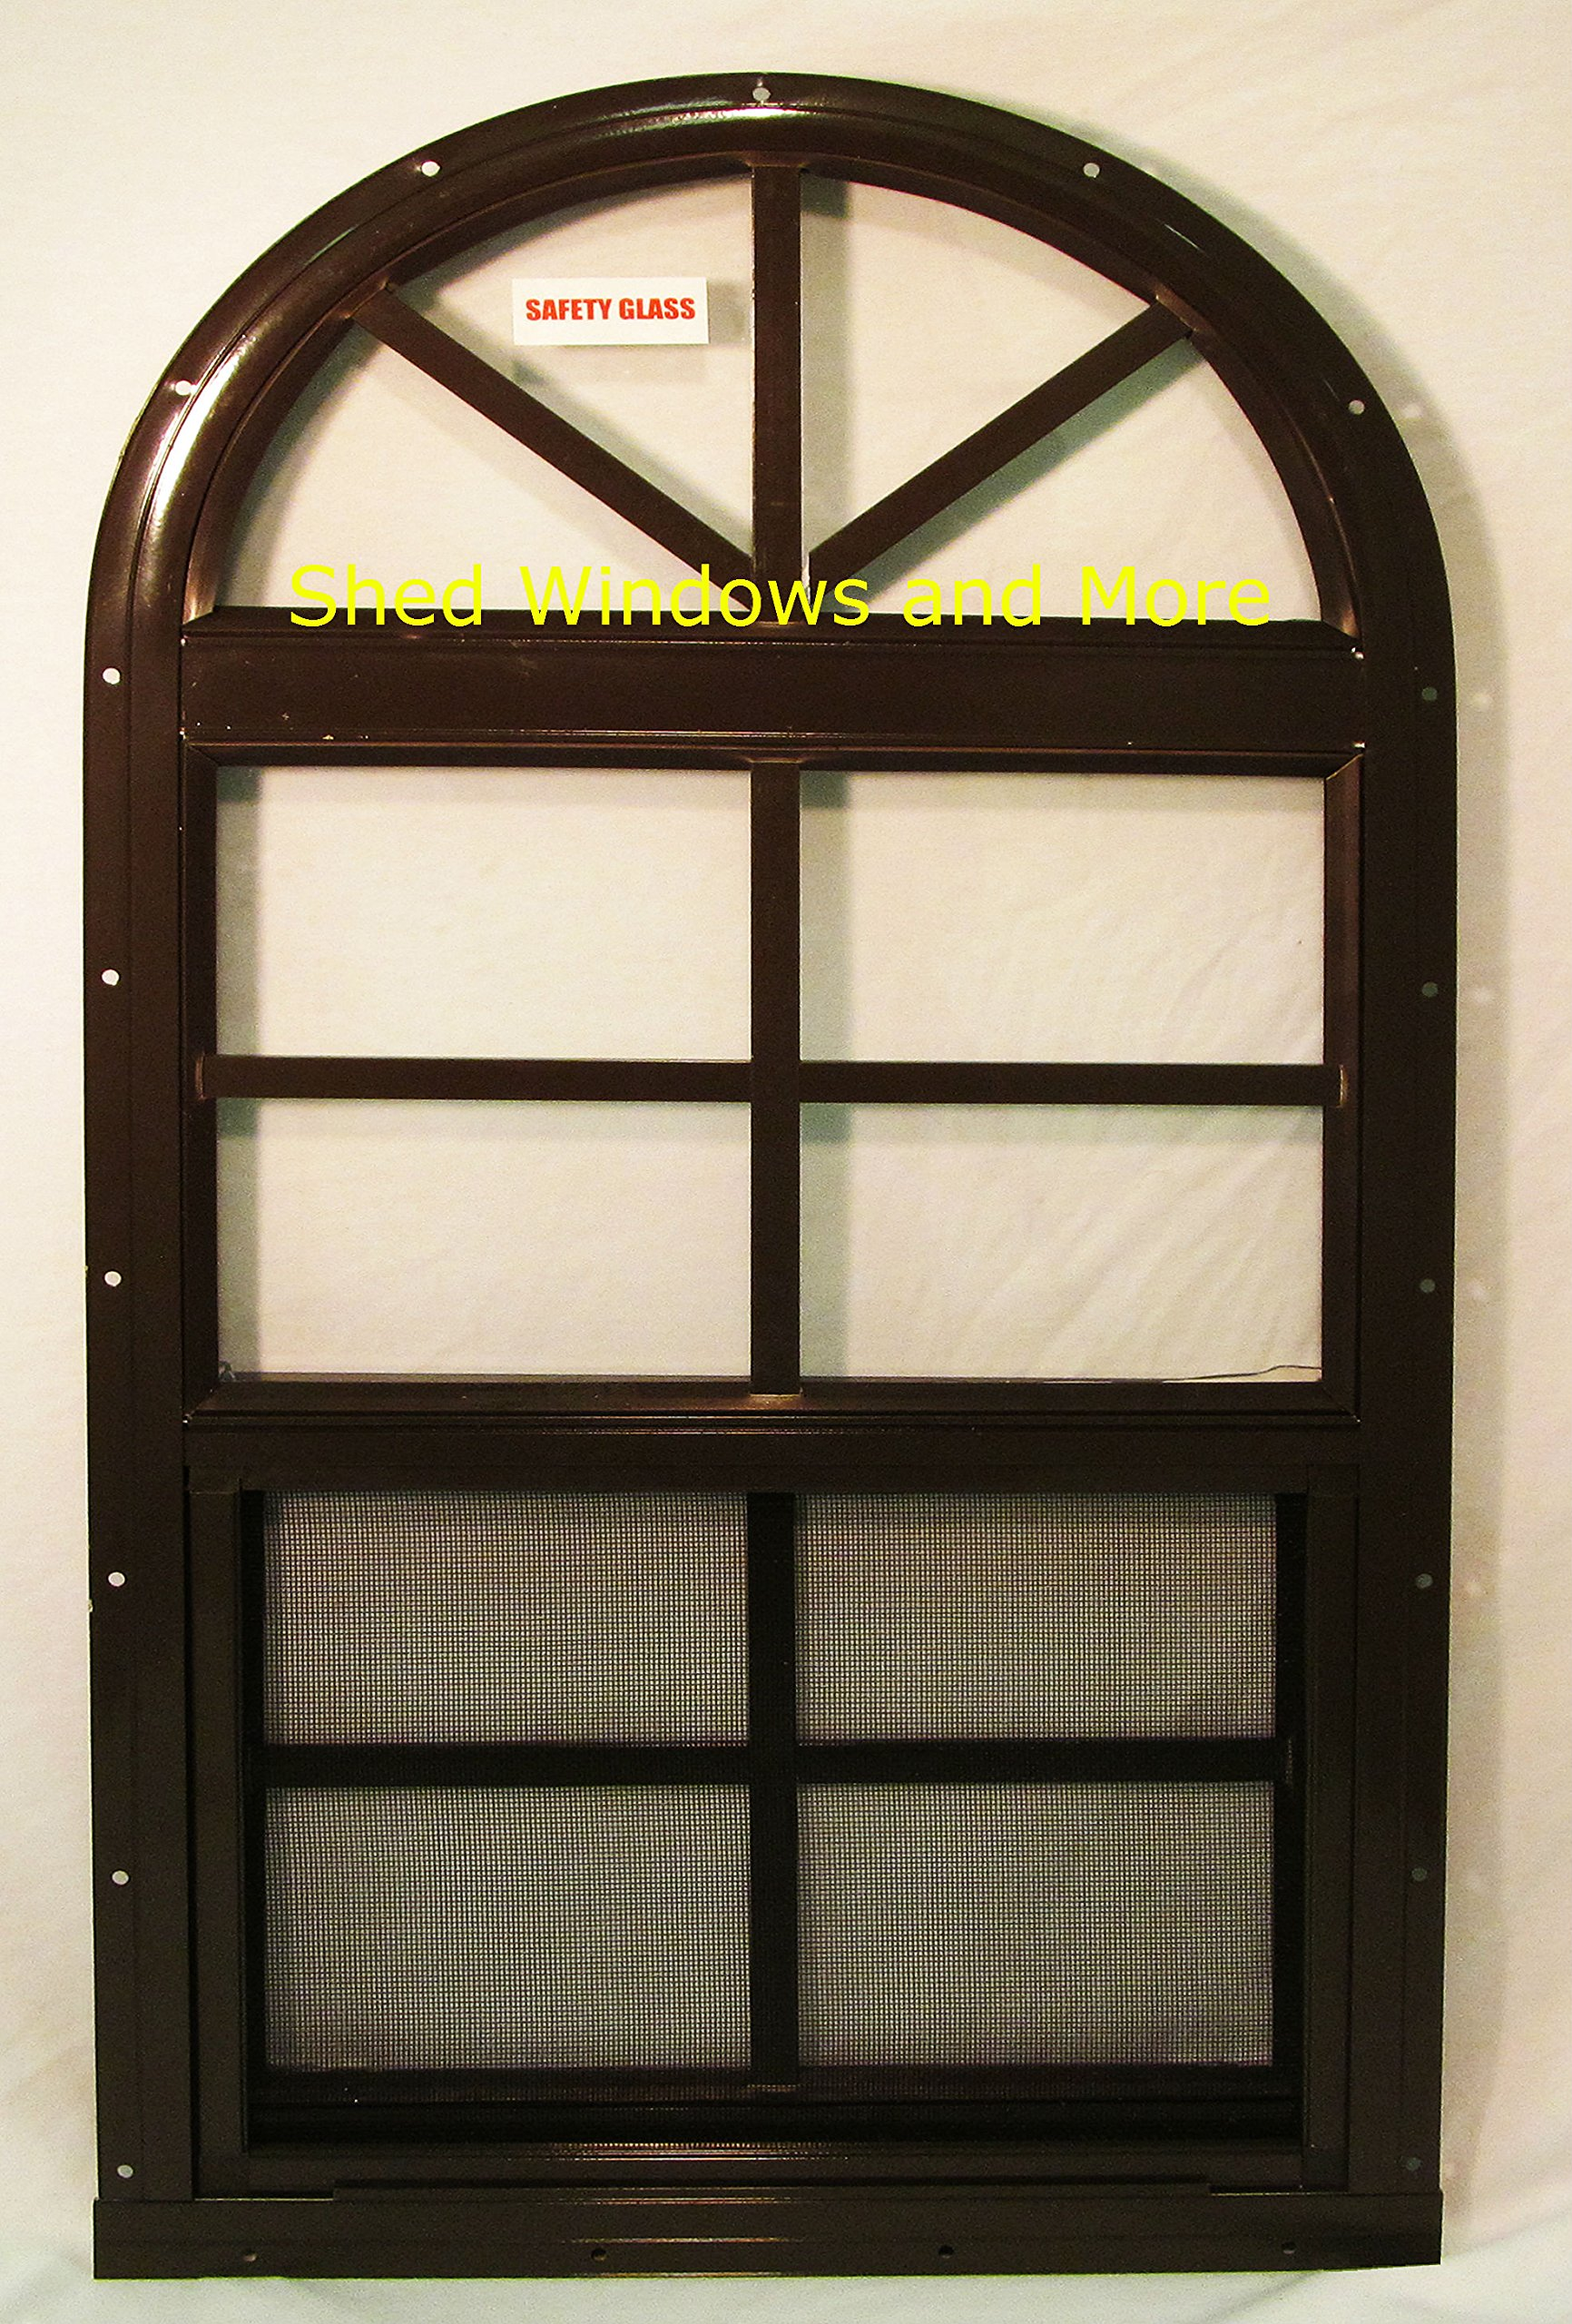 Arched Shed Playhouse Windows 14 X 28 Brown, Safety Glass Aluminum Frame by Shed Windows and More (Image #1)